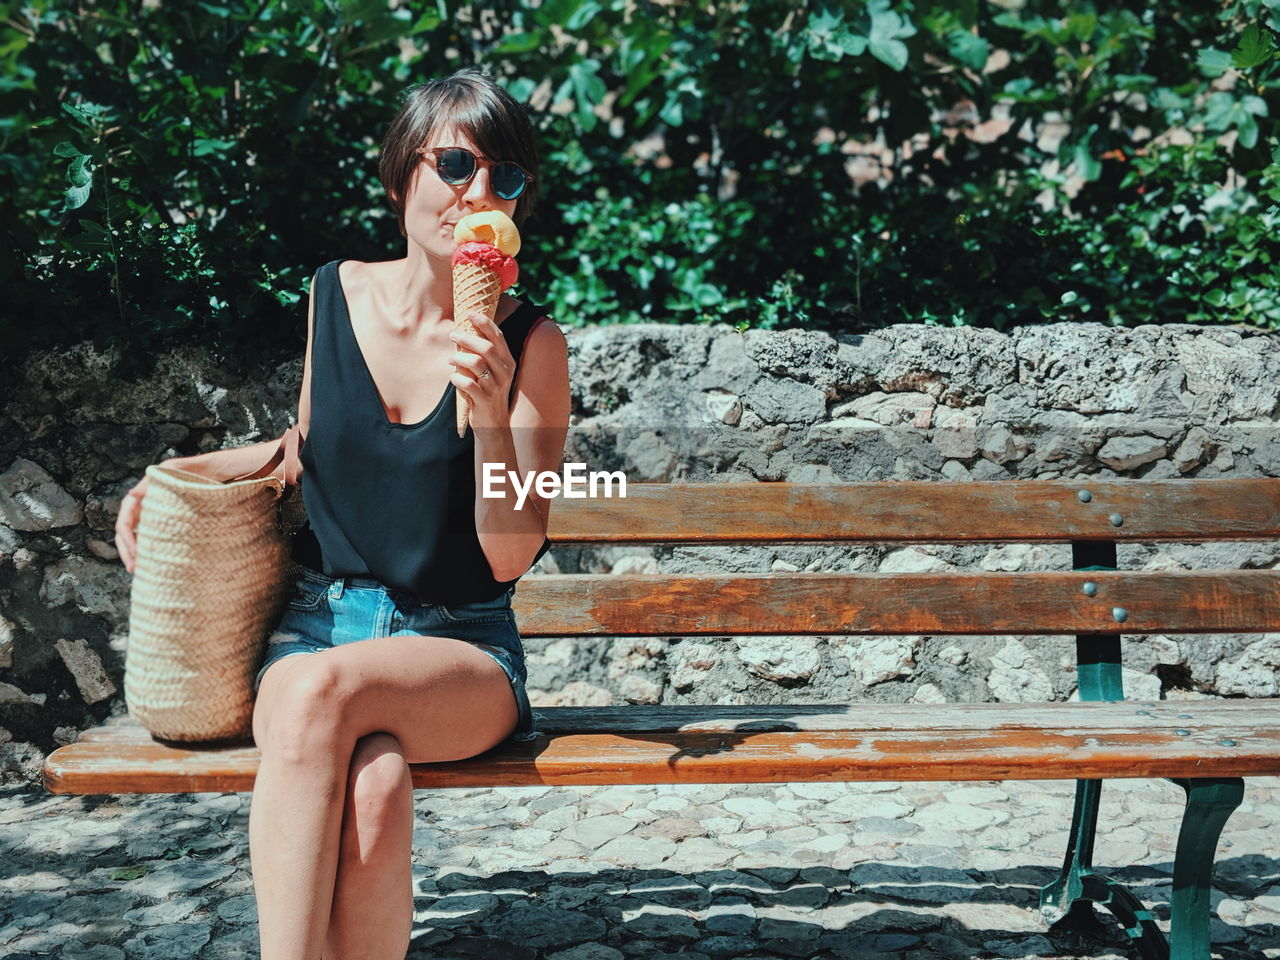 Woman Eating Ice Cream While Sitting On Bench During Sunny Day